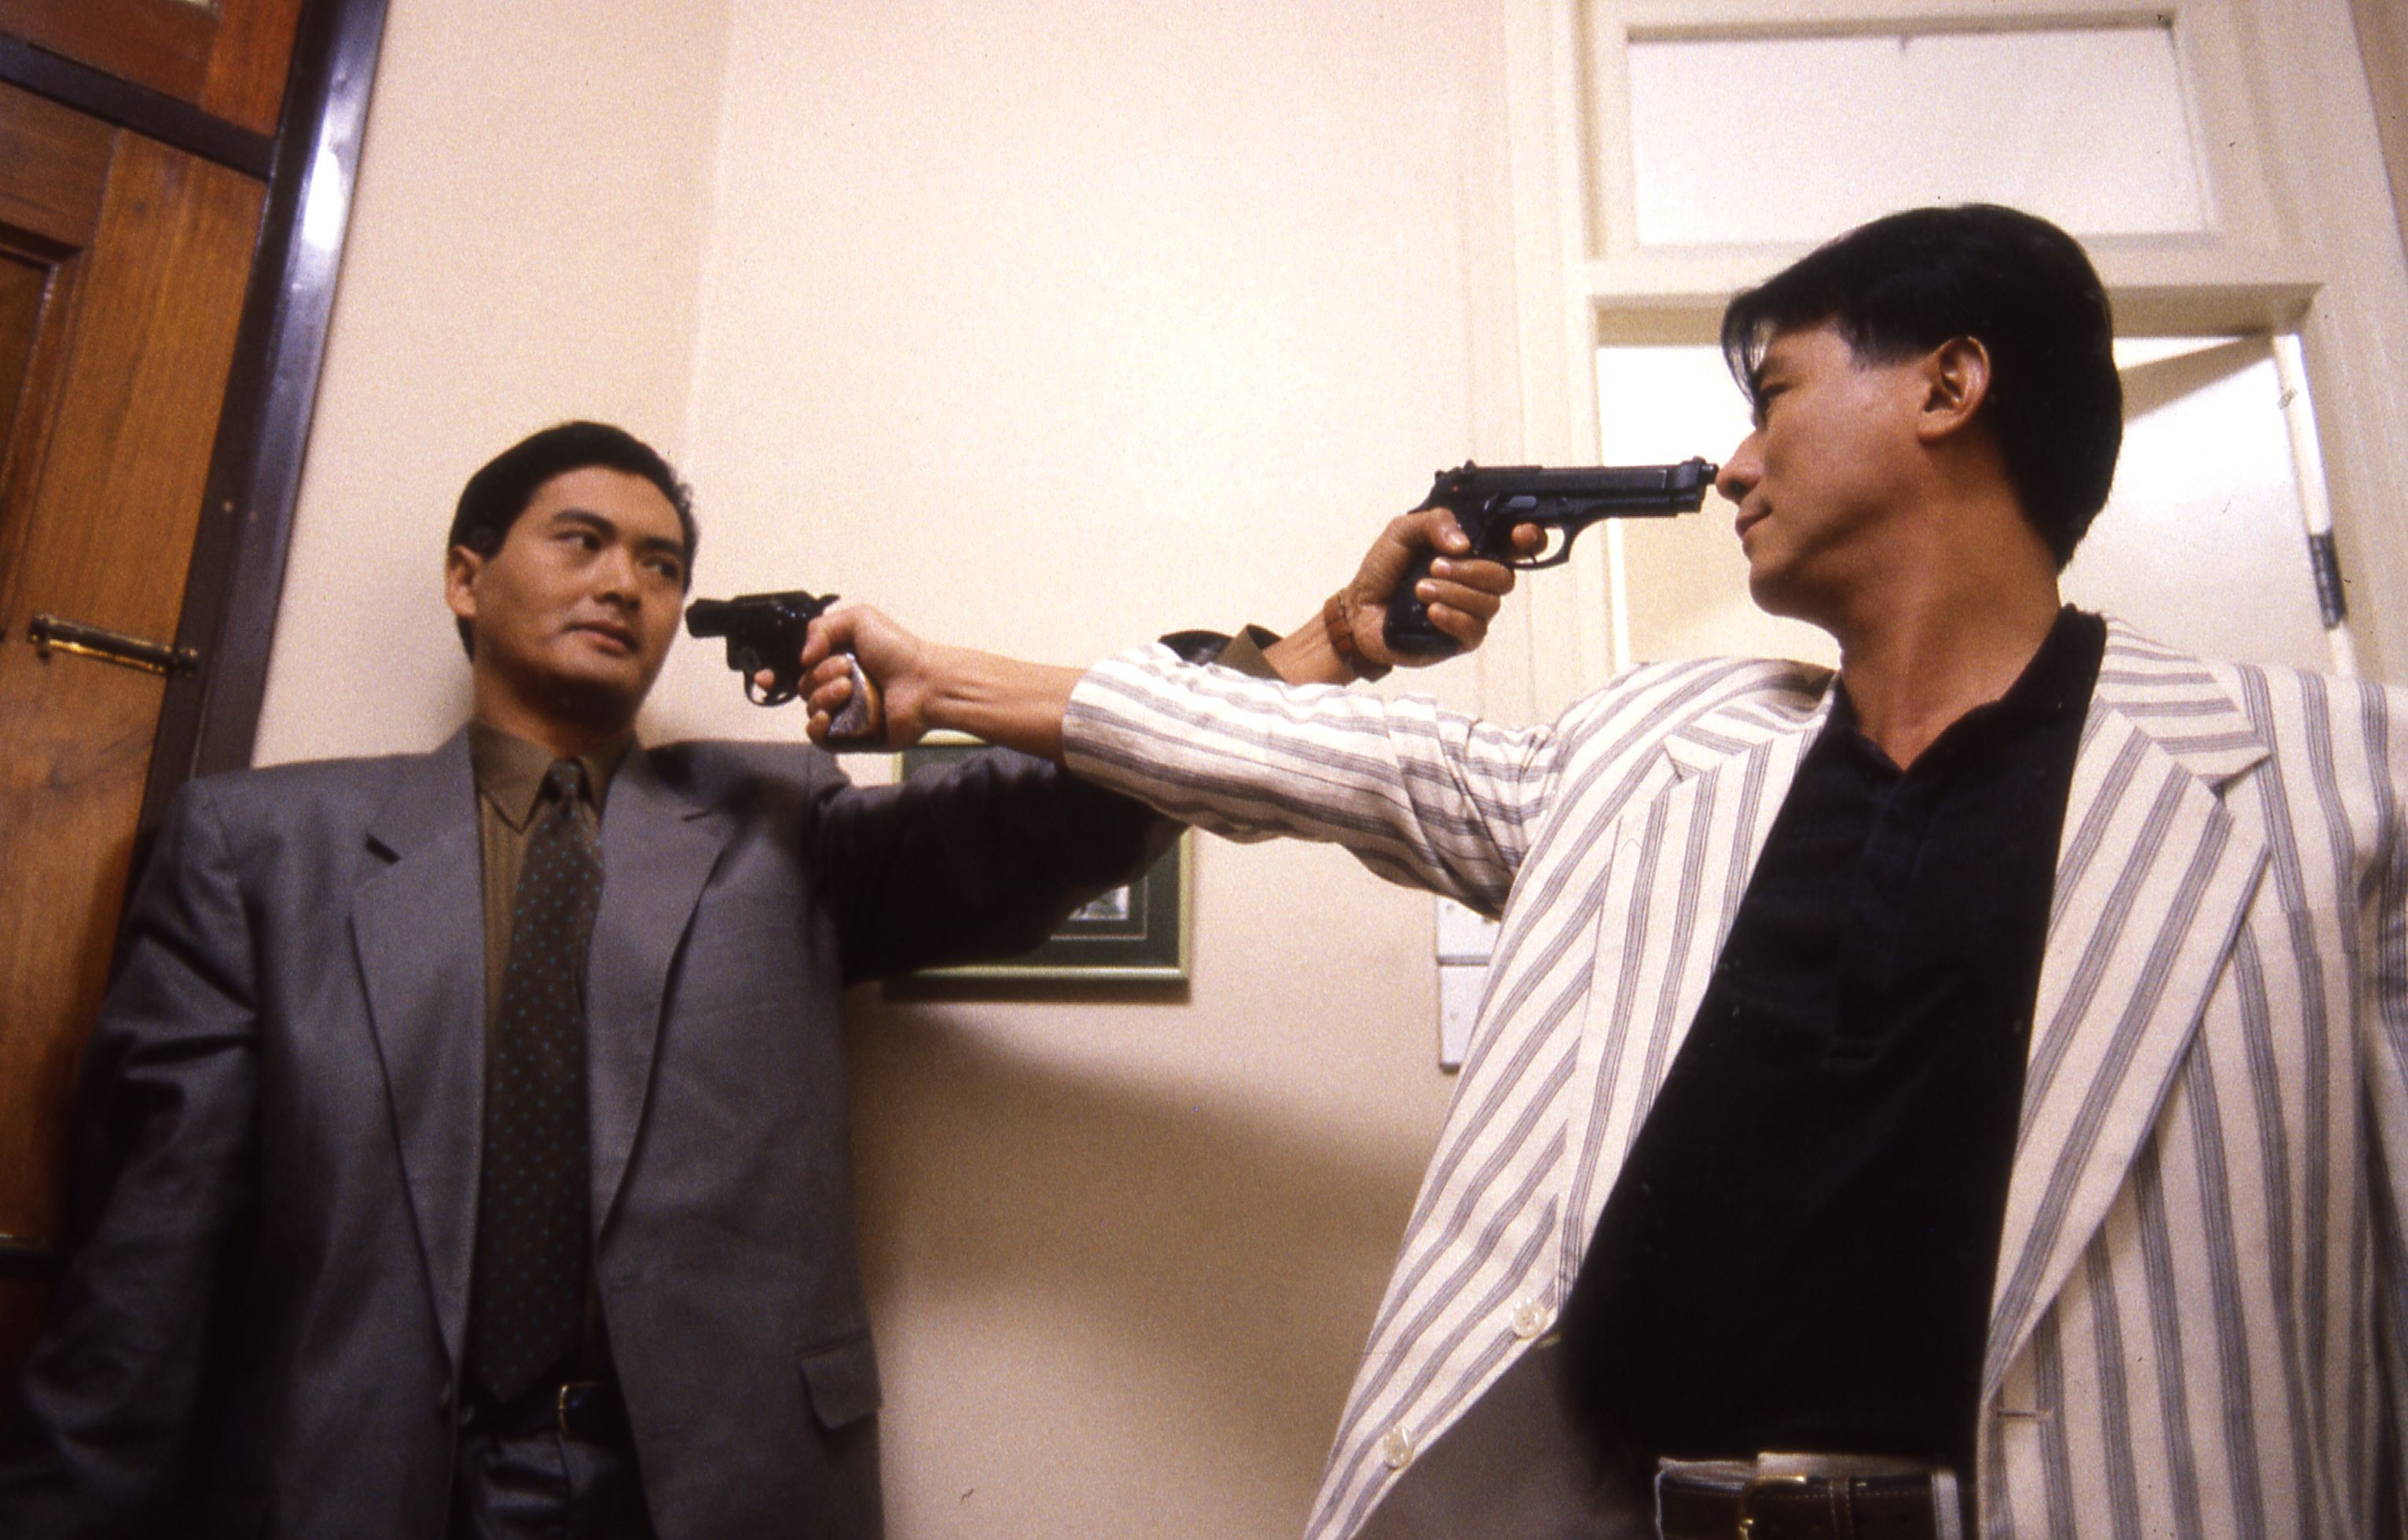 Hyperviolent and homoerotic, John Woo's gangster masterpiece The Killer is  as powerful today as in 1989 | South China Morning Post